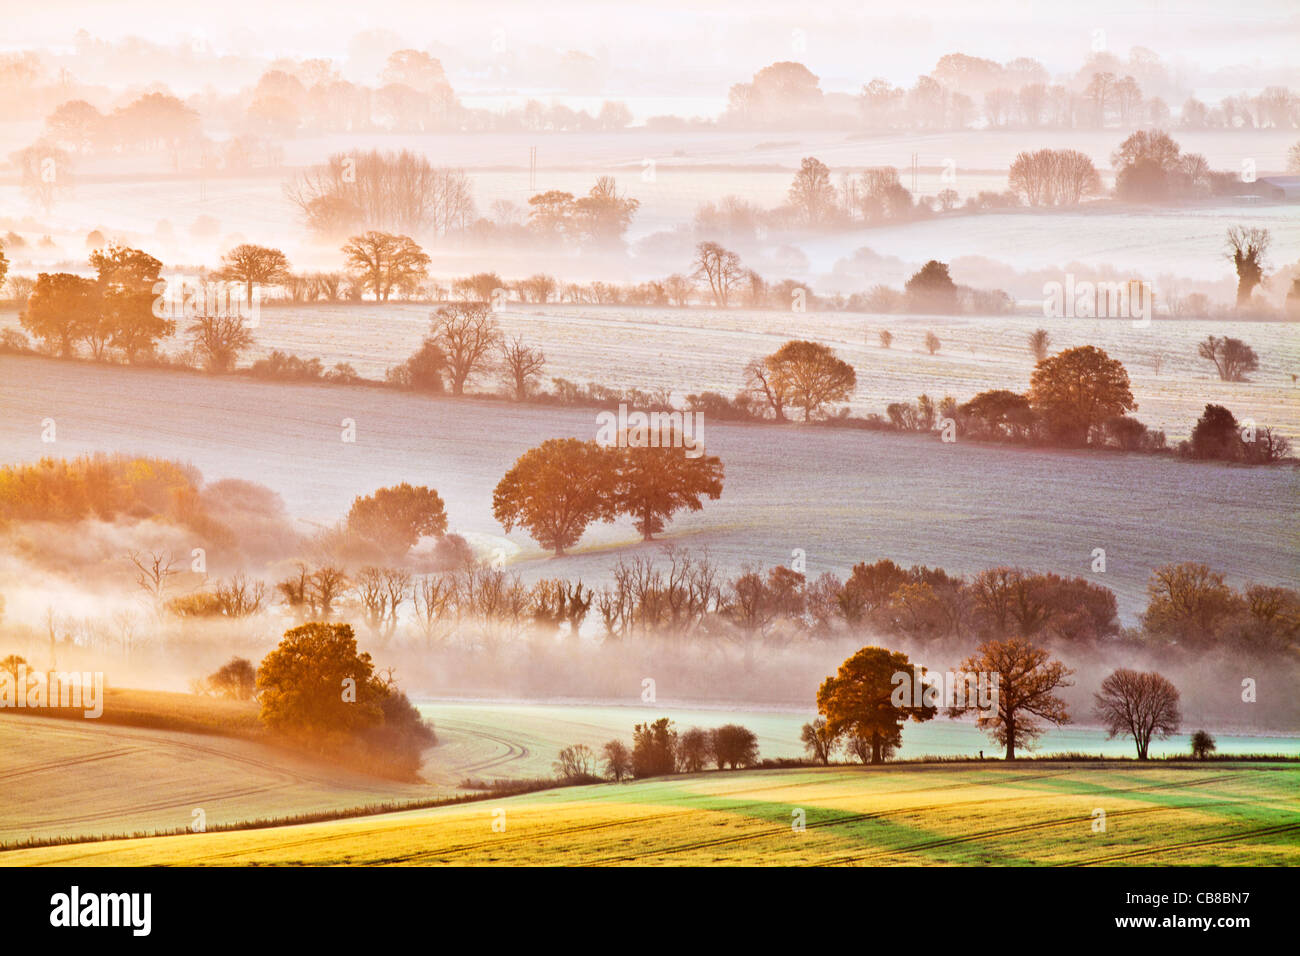 A winter sunrise view from Martinsell Hill over the Vale of Pewsey in Wiltshire, England, UK Stock Photo